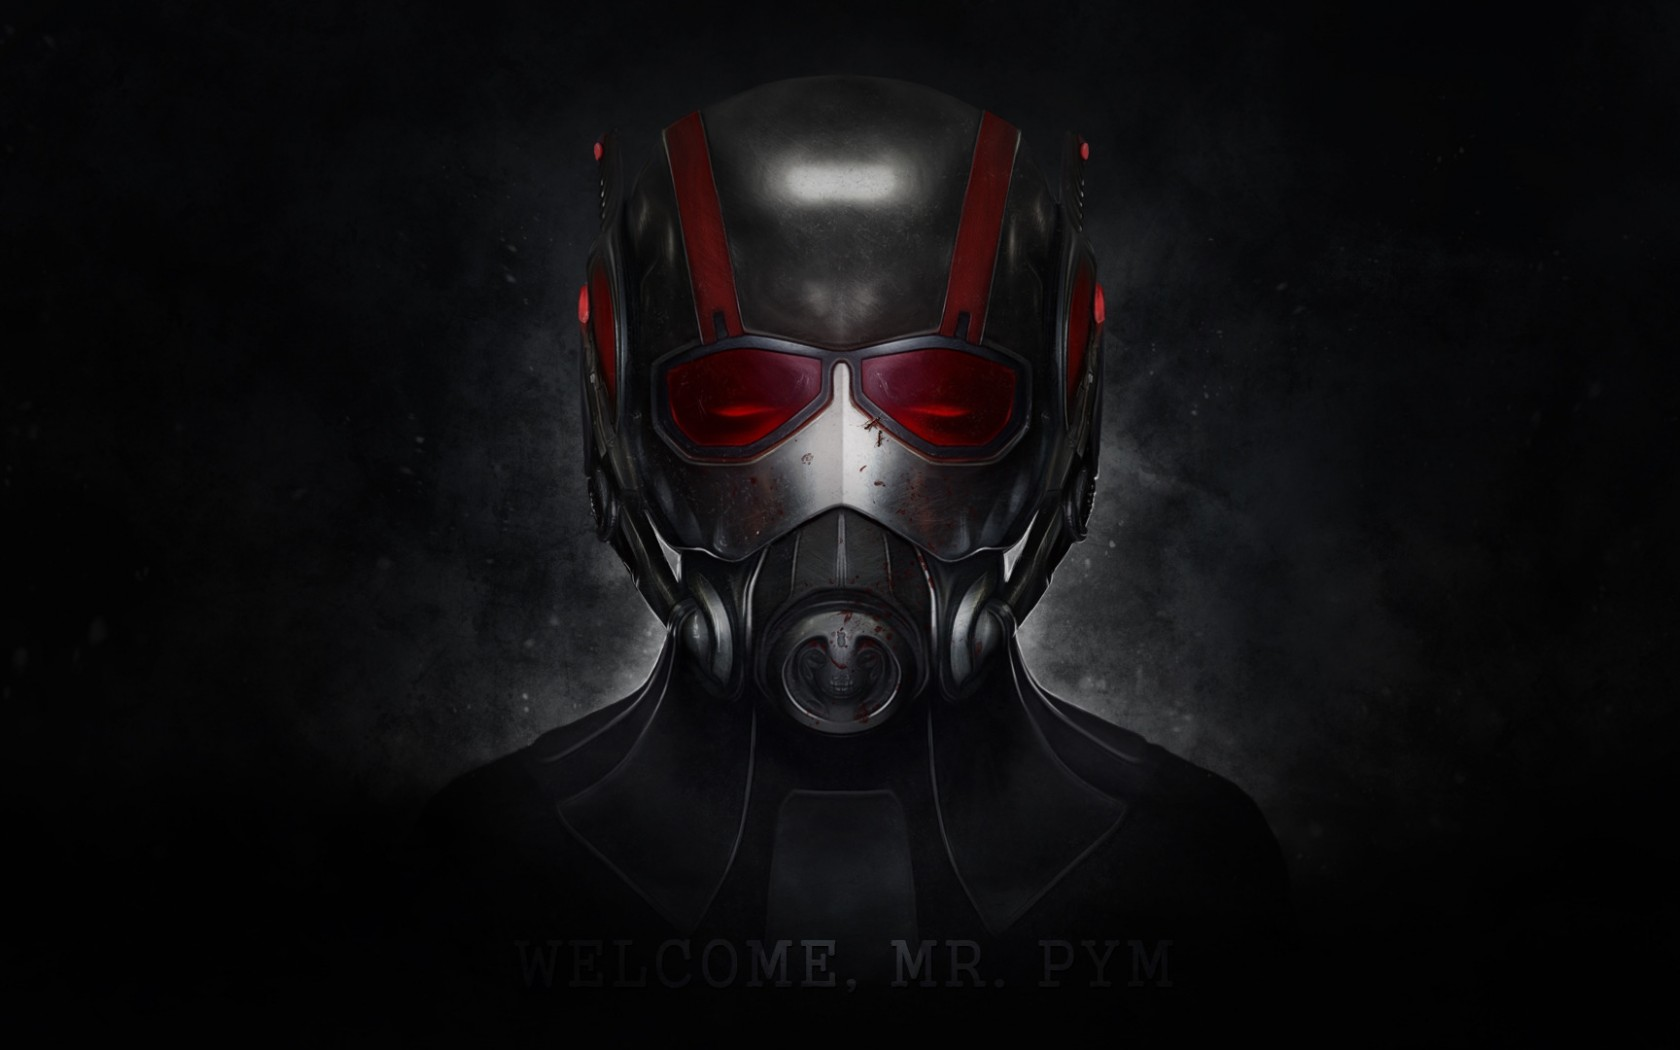 49] Ant Man PC Wallpaper on WallpaperSafari 1680x1050